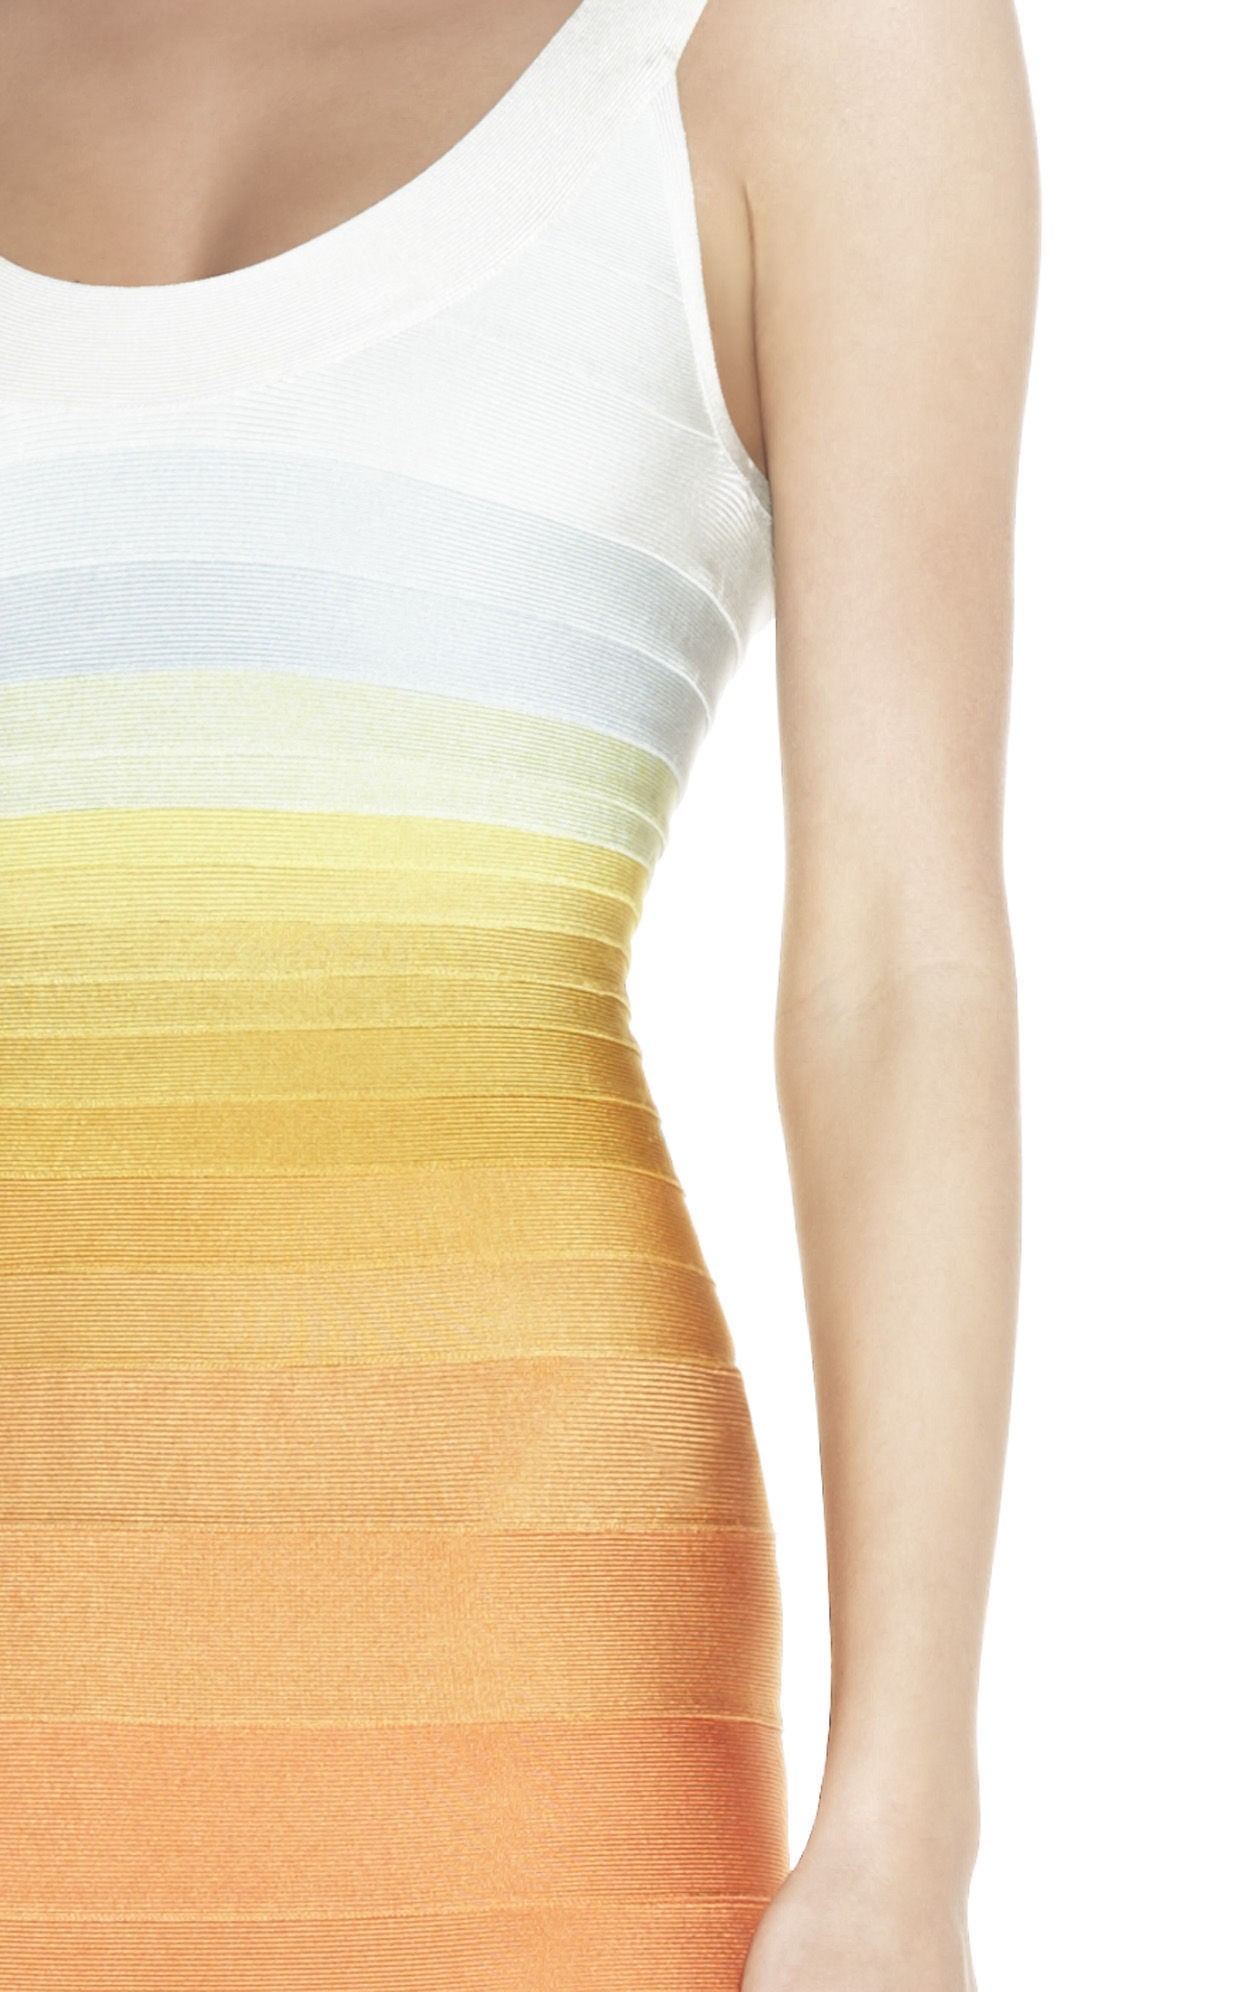 Herve Leger Round Neck Halter Gradient Color Block Bandage Dress